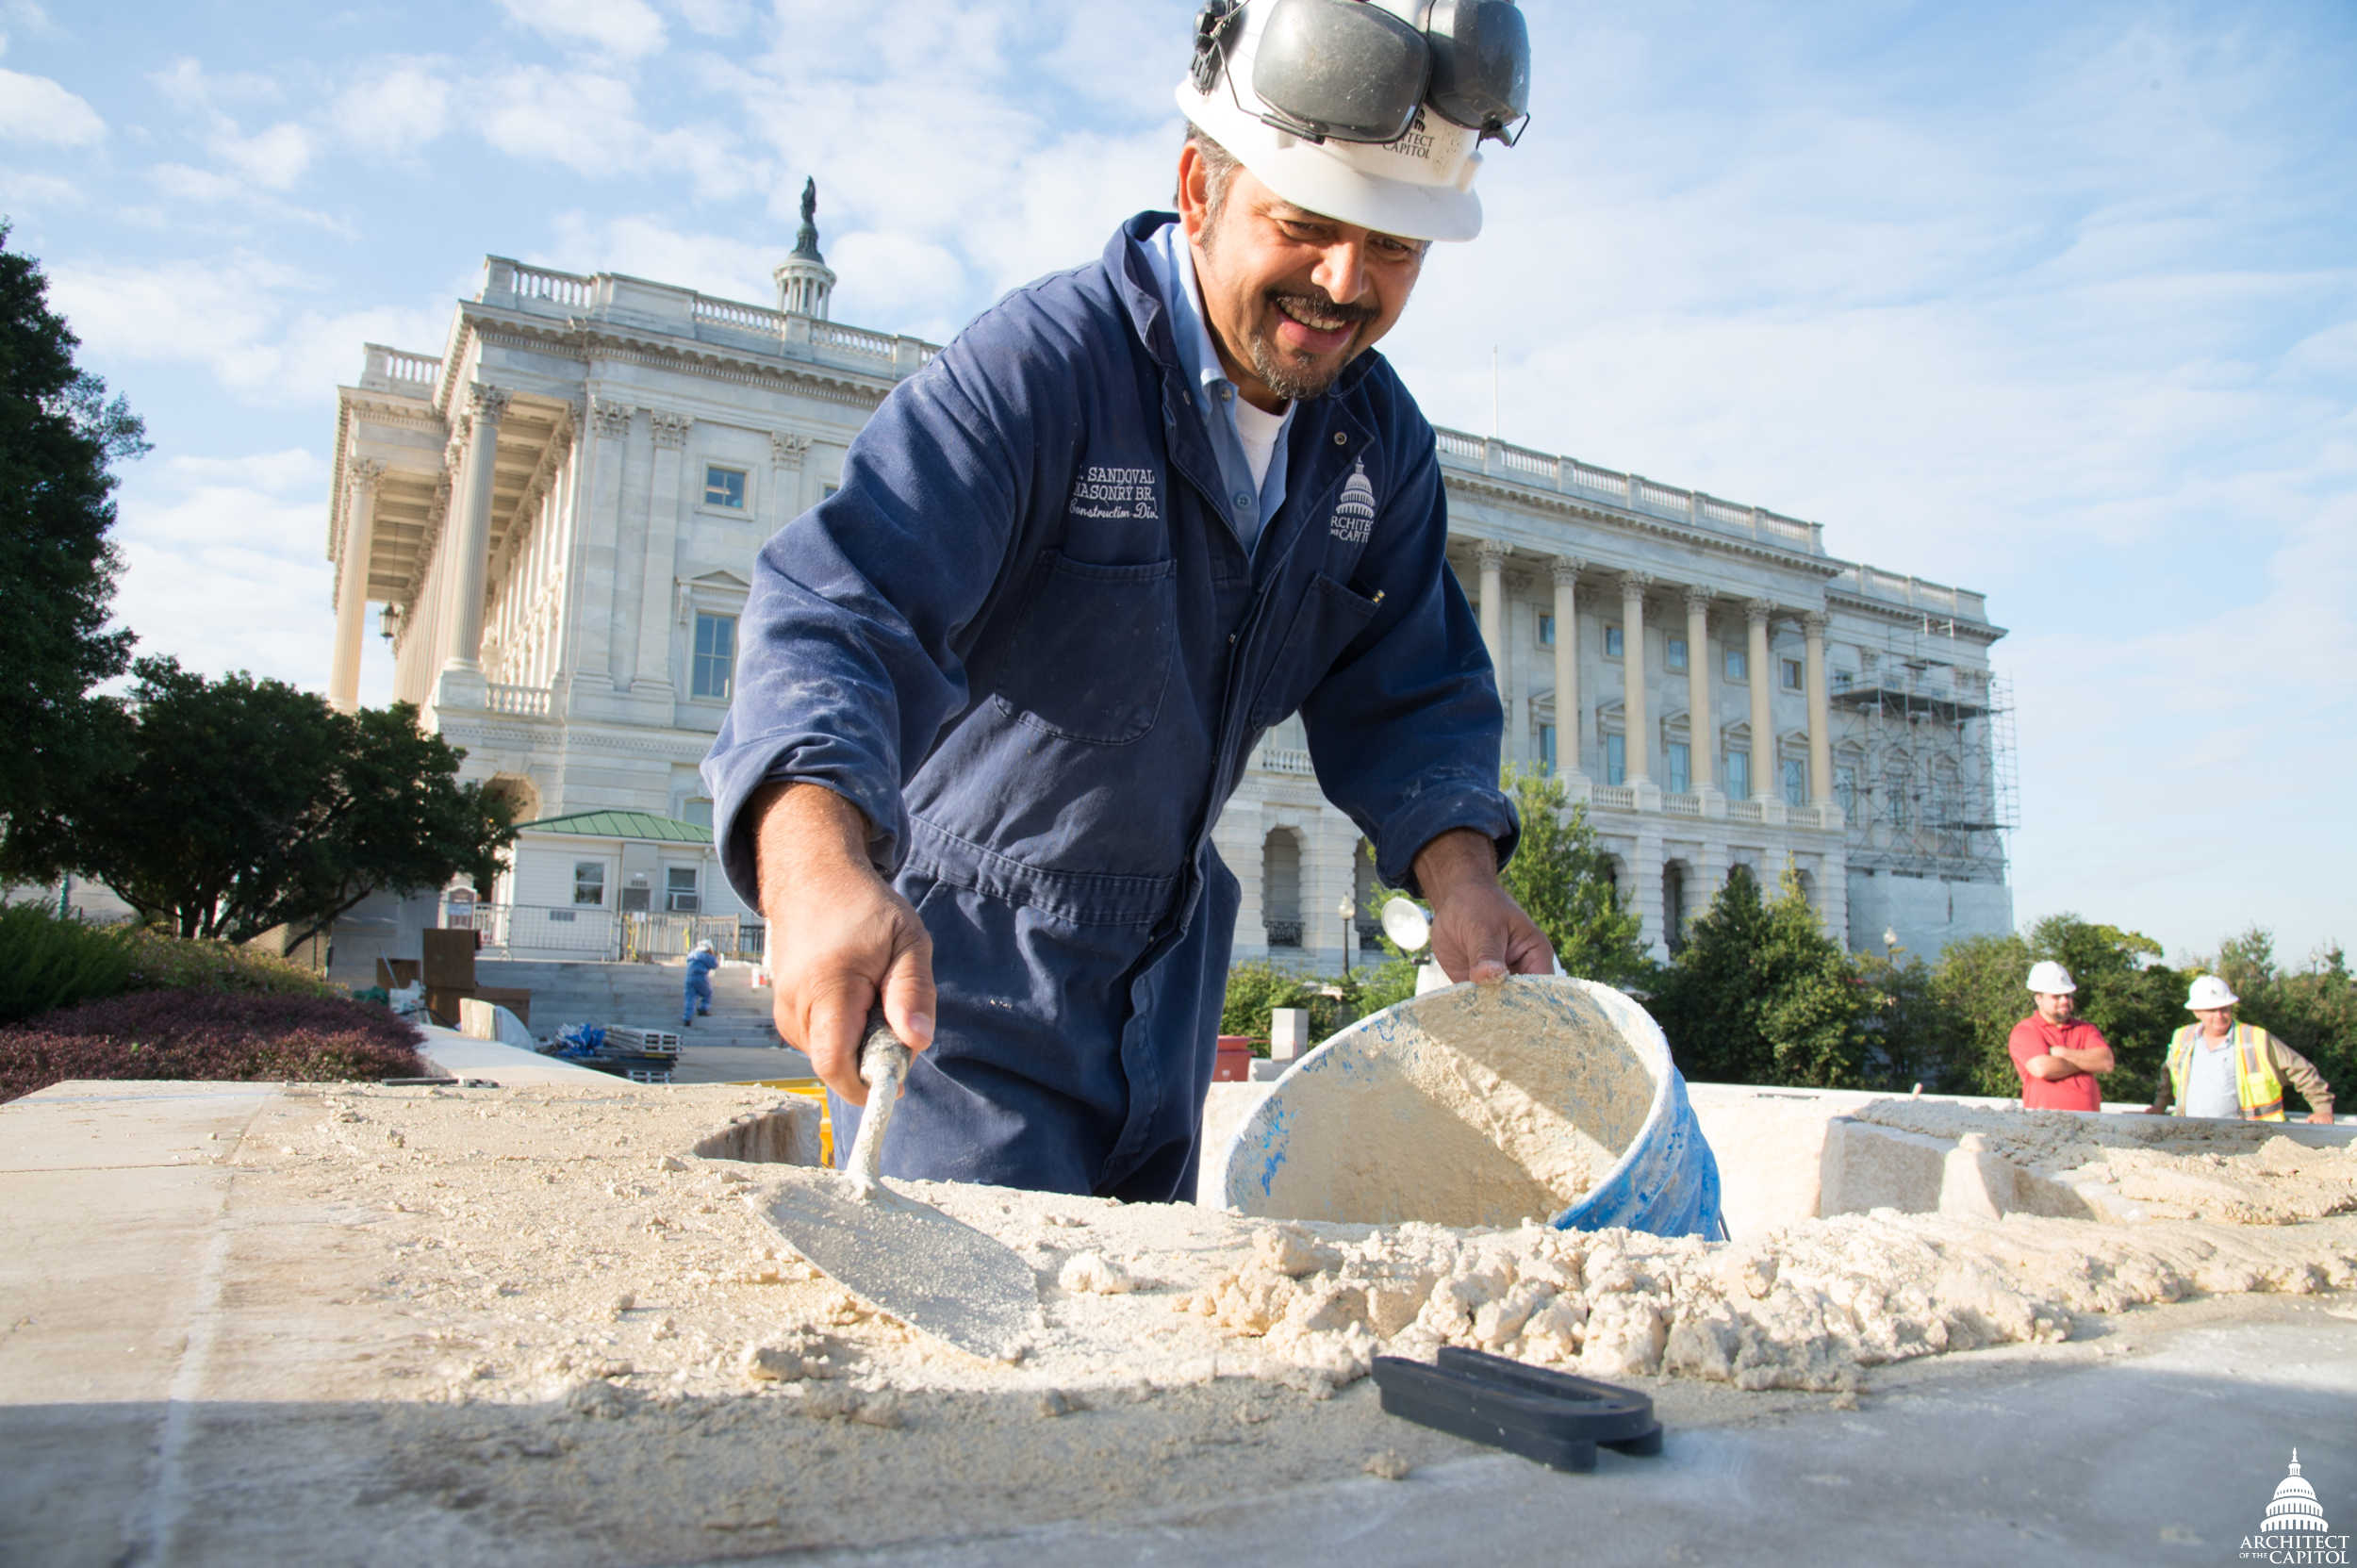 An AOC stonemason repairs the Olmsted Terrace.